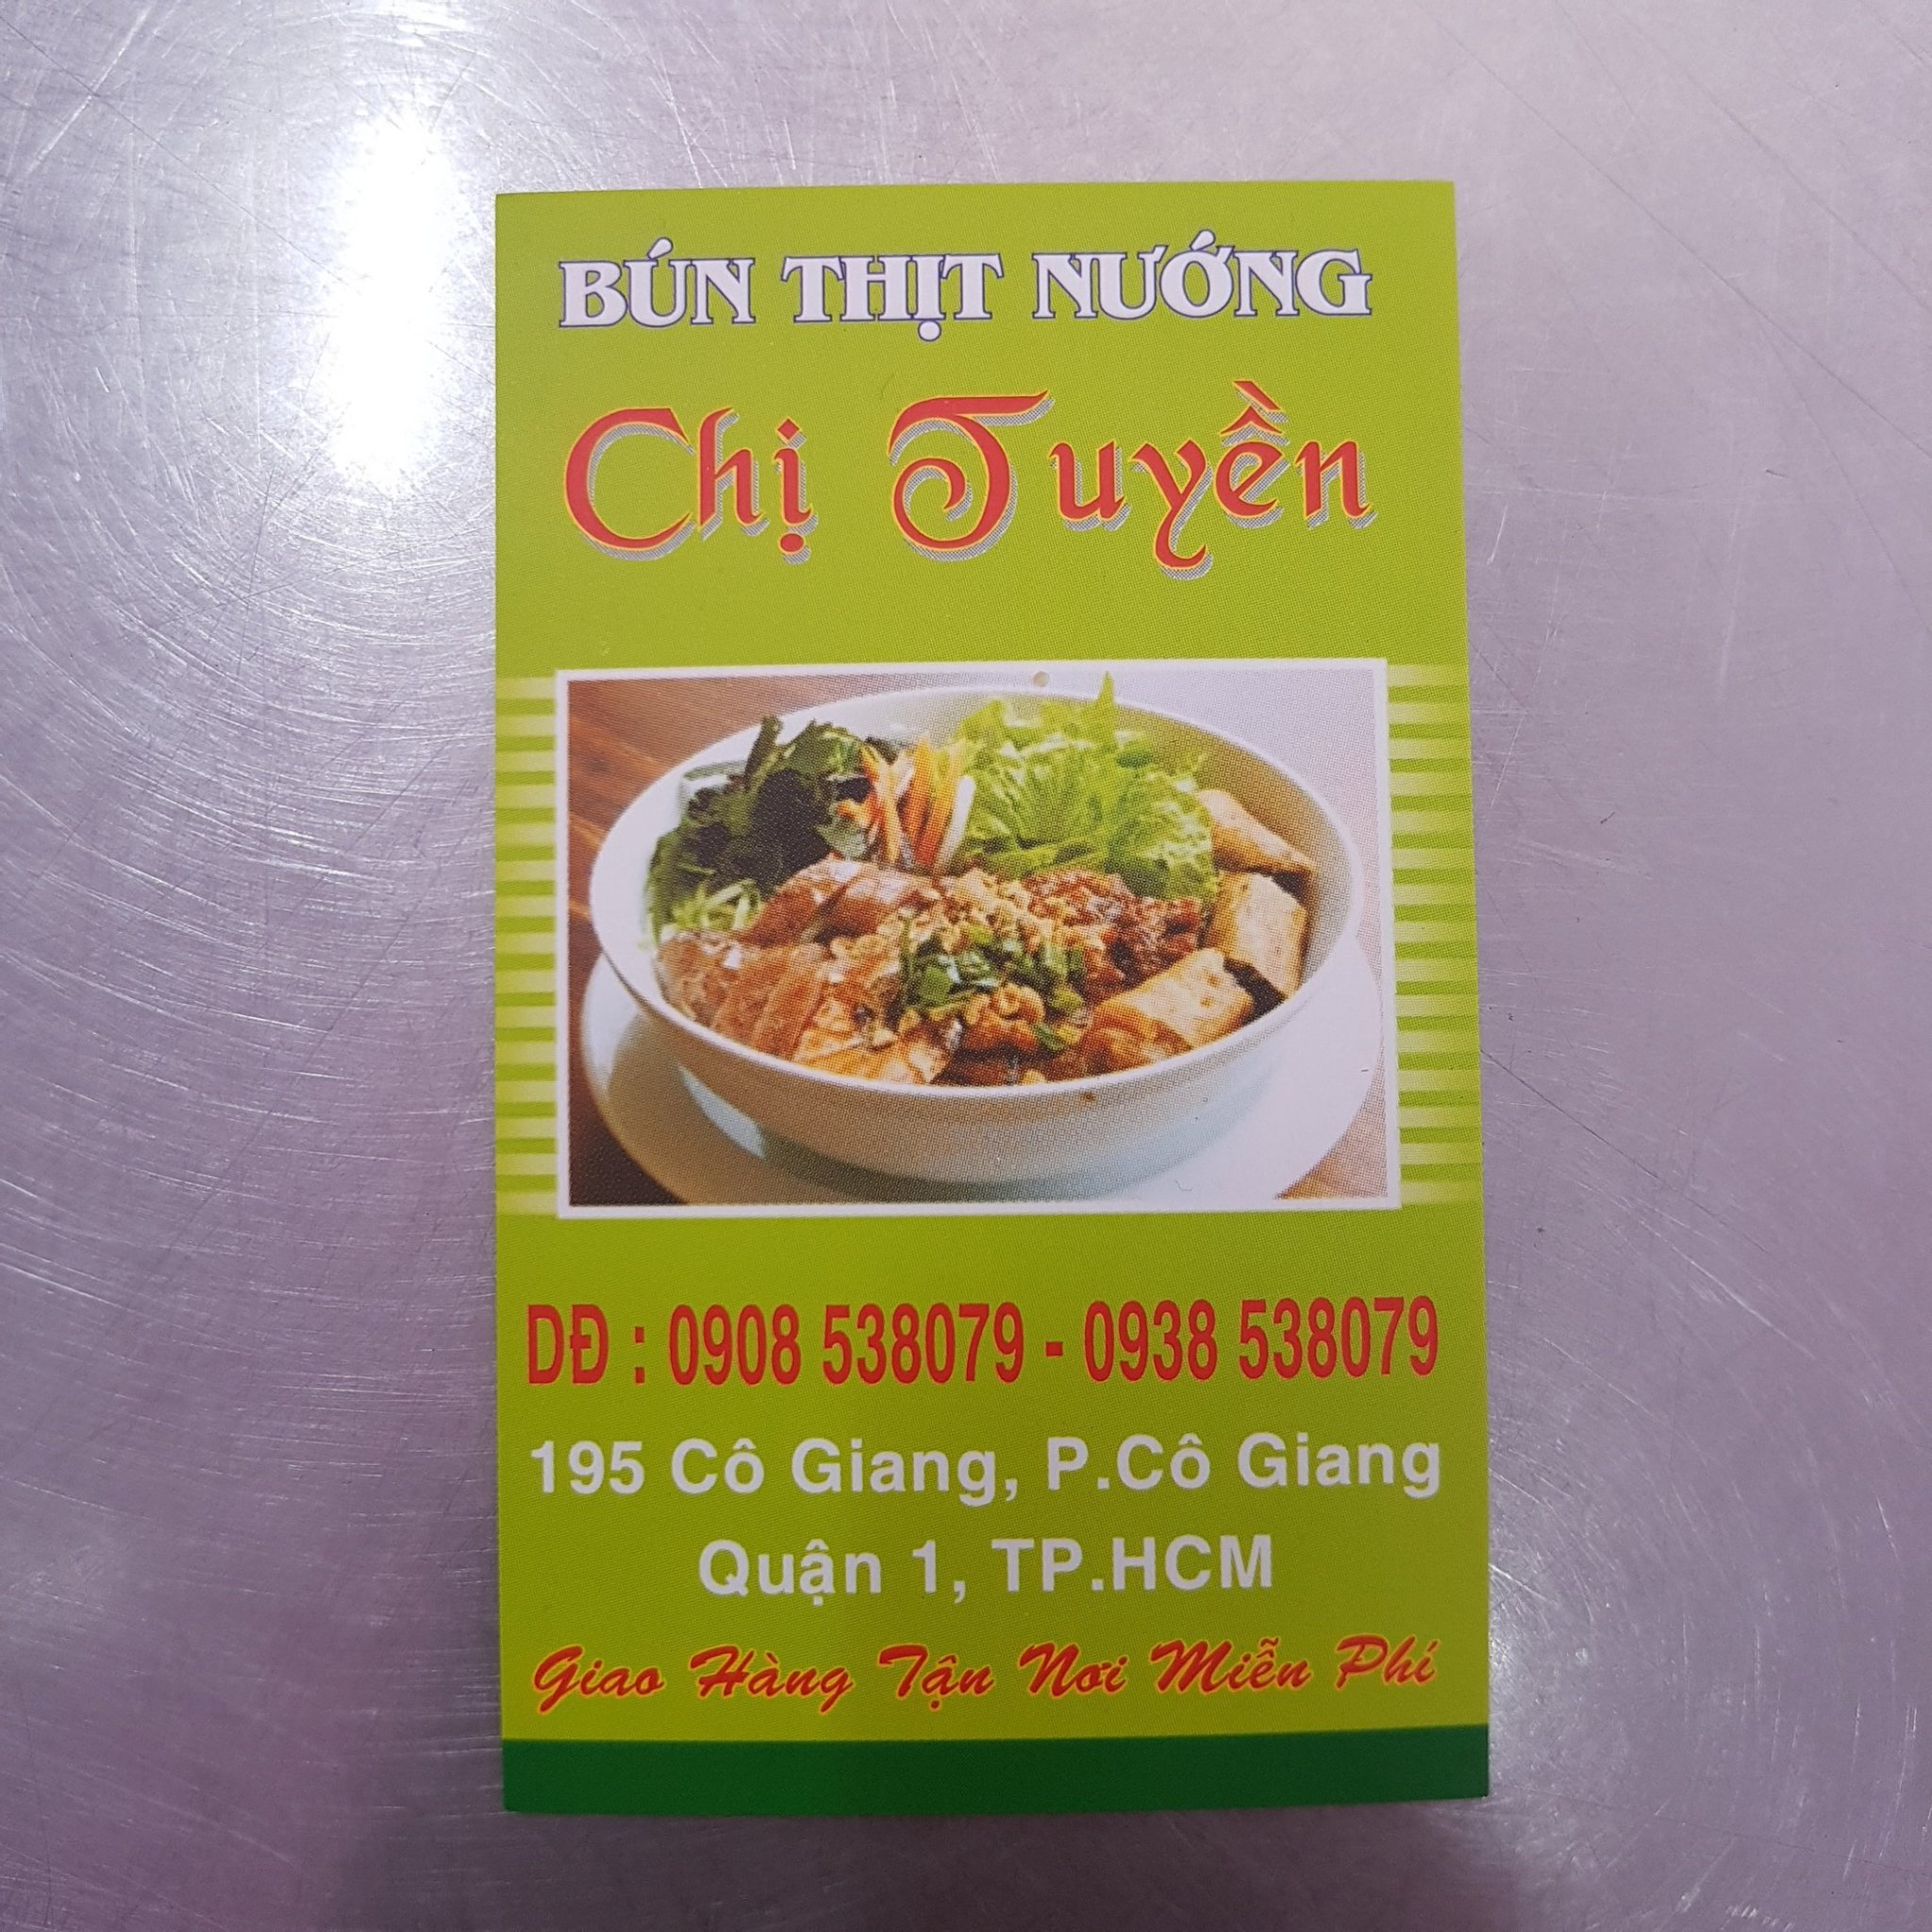 Bun Thit Nuong address